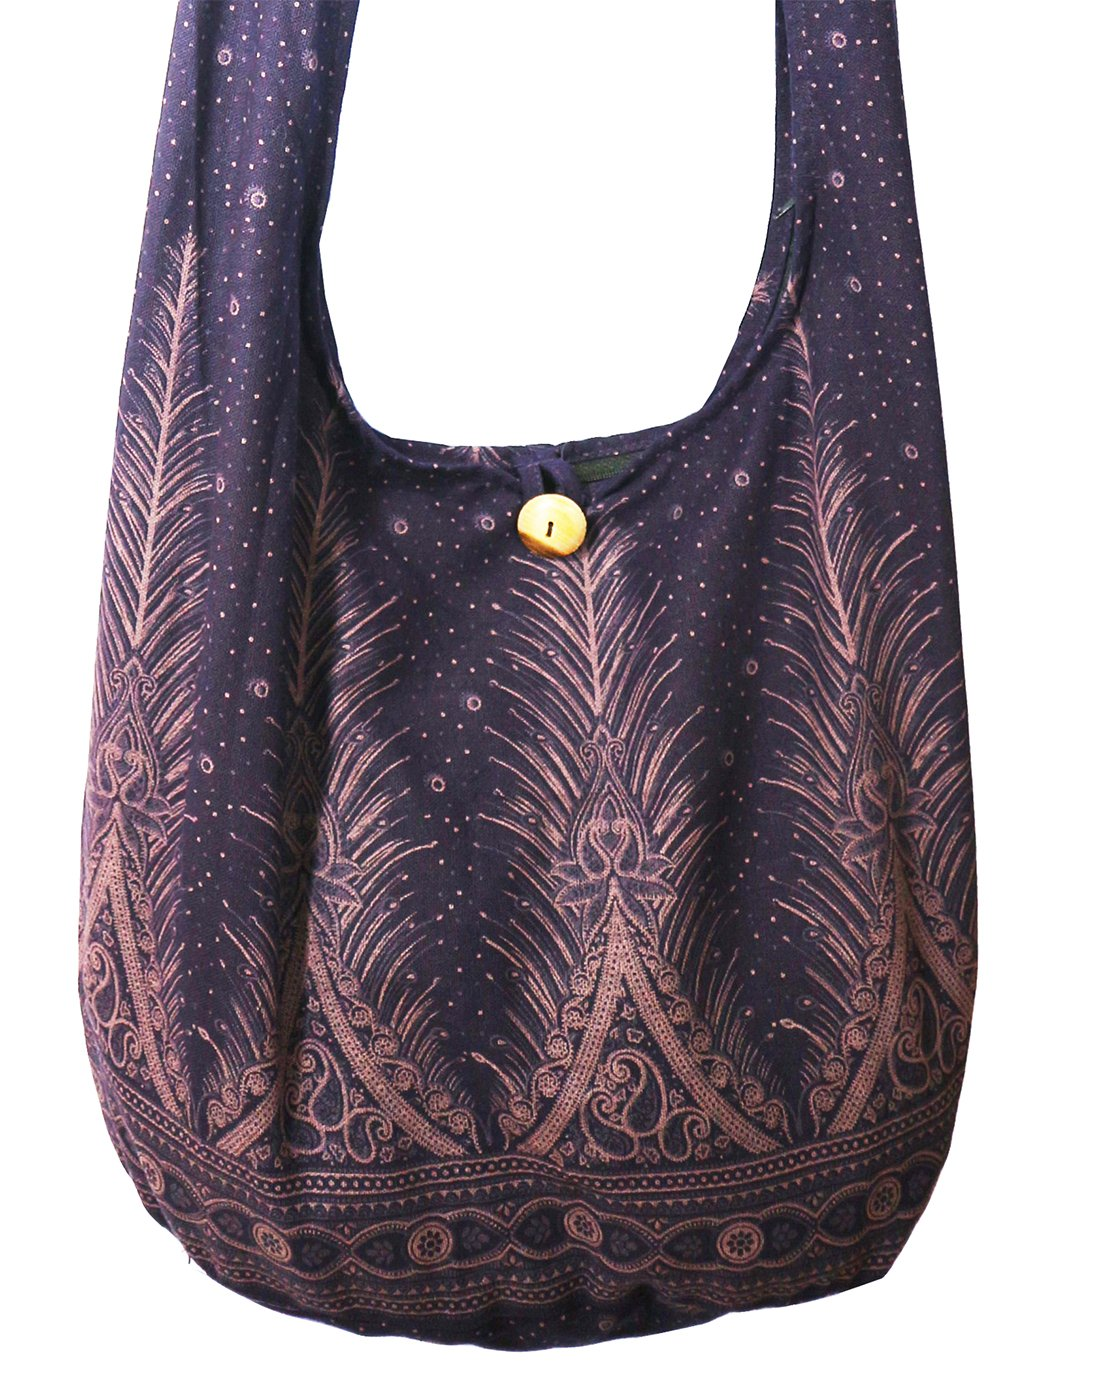 Lovely Creations's Hippie Boho New Elephant Crossbody Bohemian Gypsy Sling Bag Shoulder Bag Large Size (Peacock L Violet)